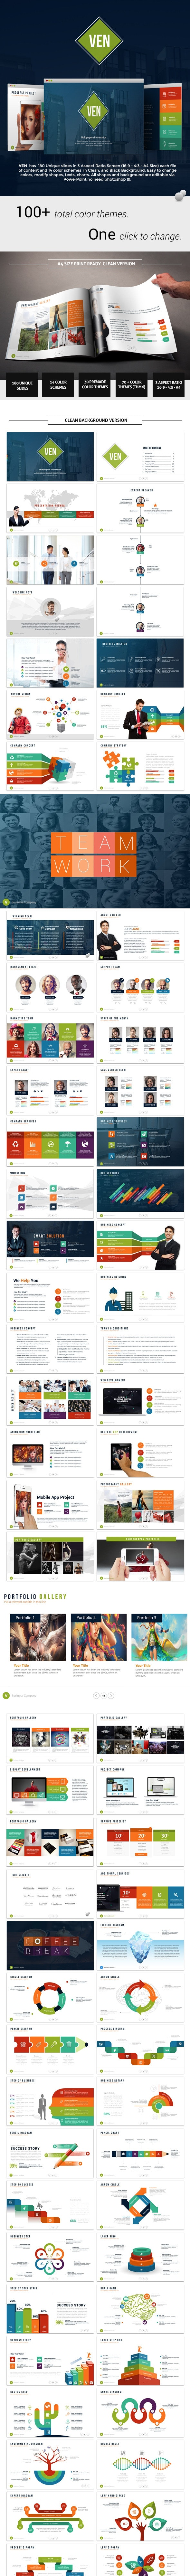 Ven - Complete Powerpoint Template - Business PowerPoint Templates